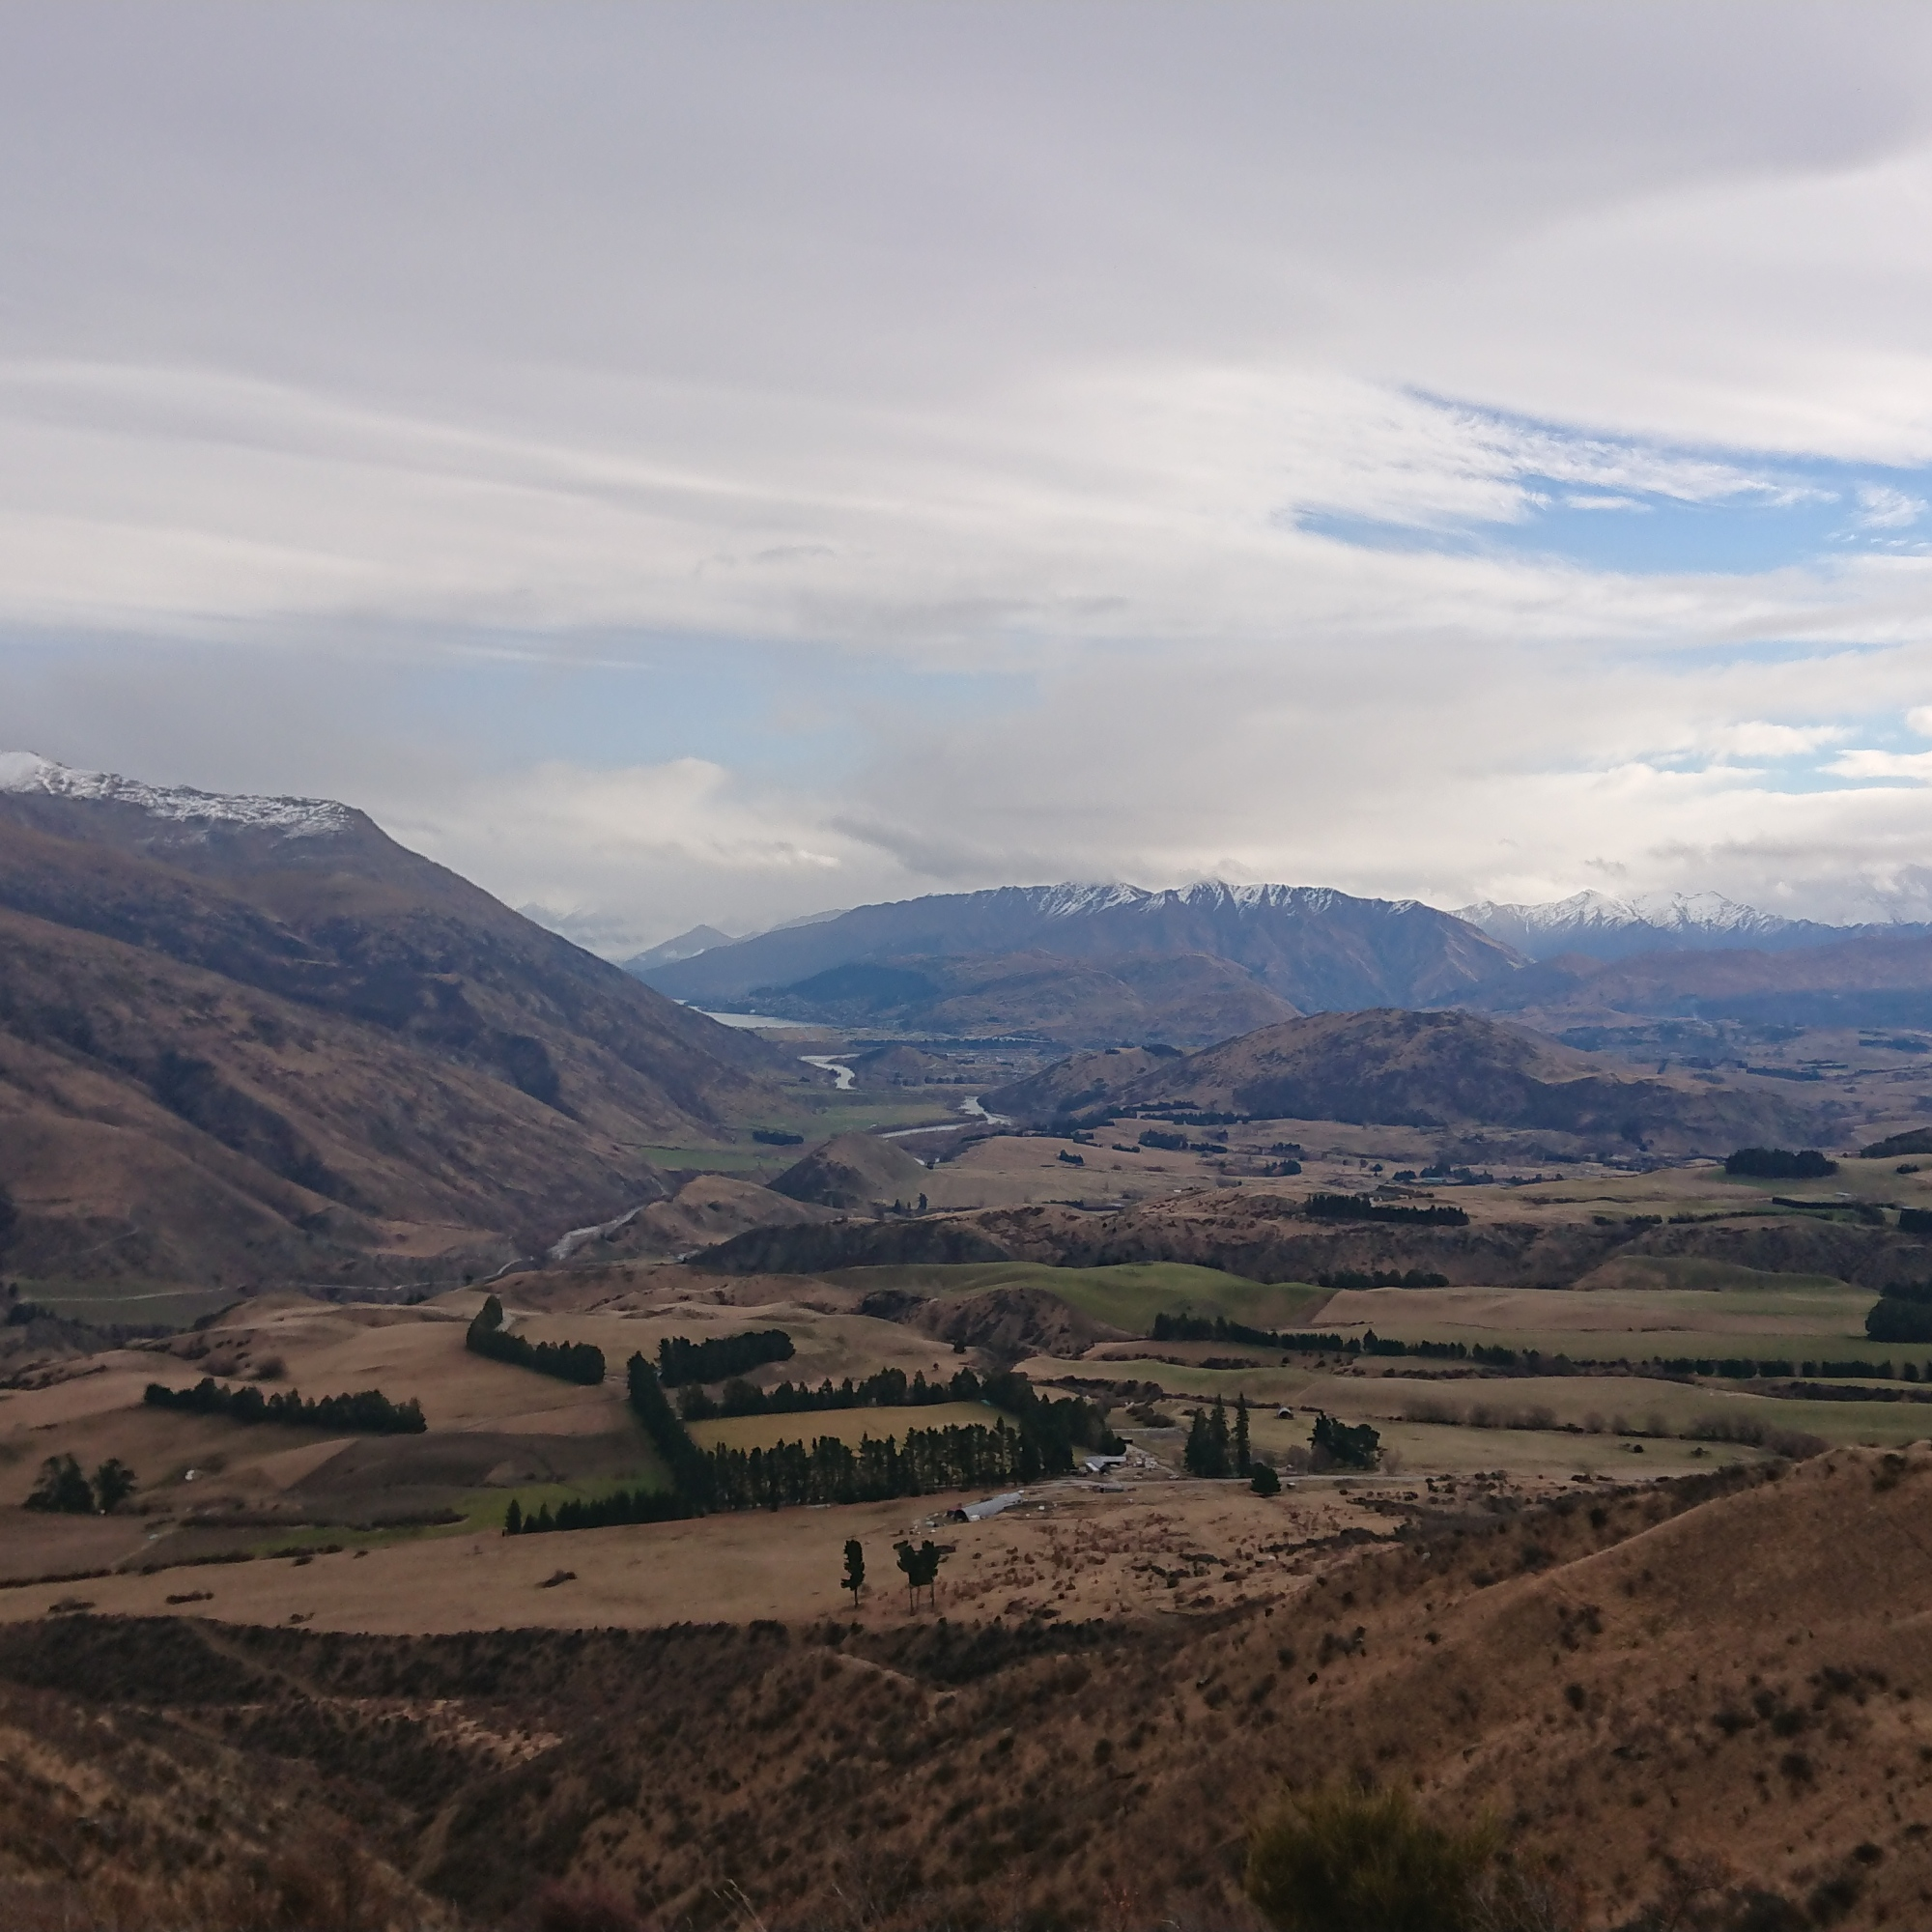 Looking back over the hills to Queenstown from the Crown Range